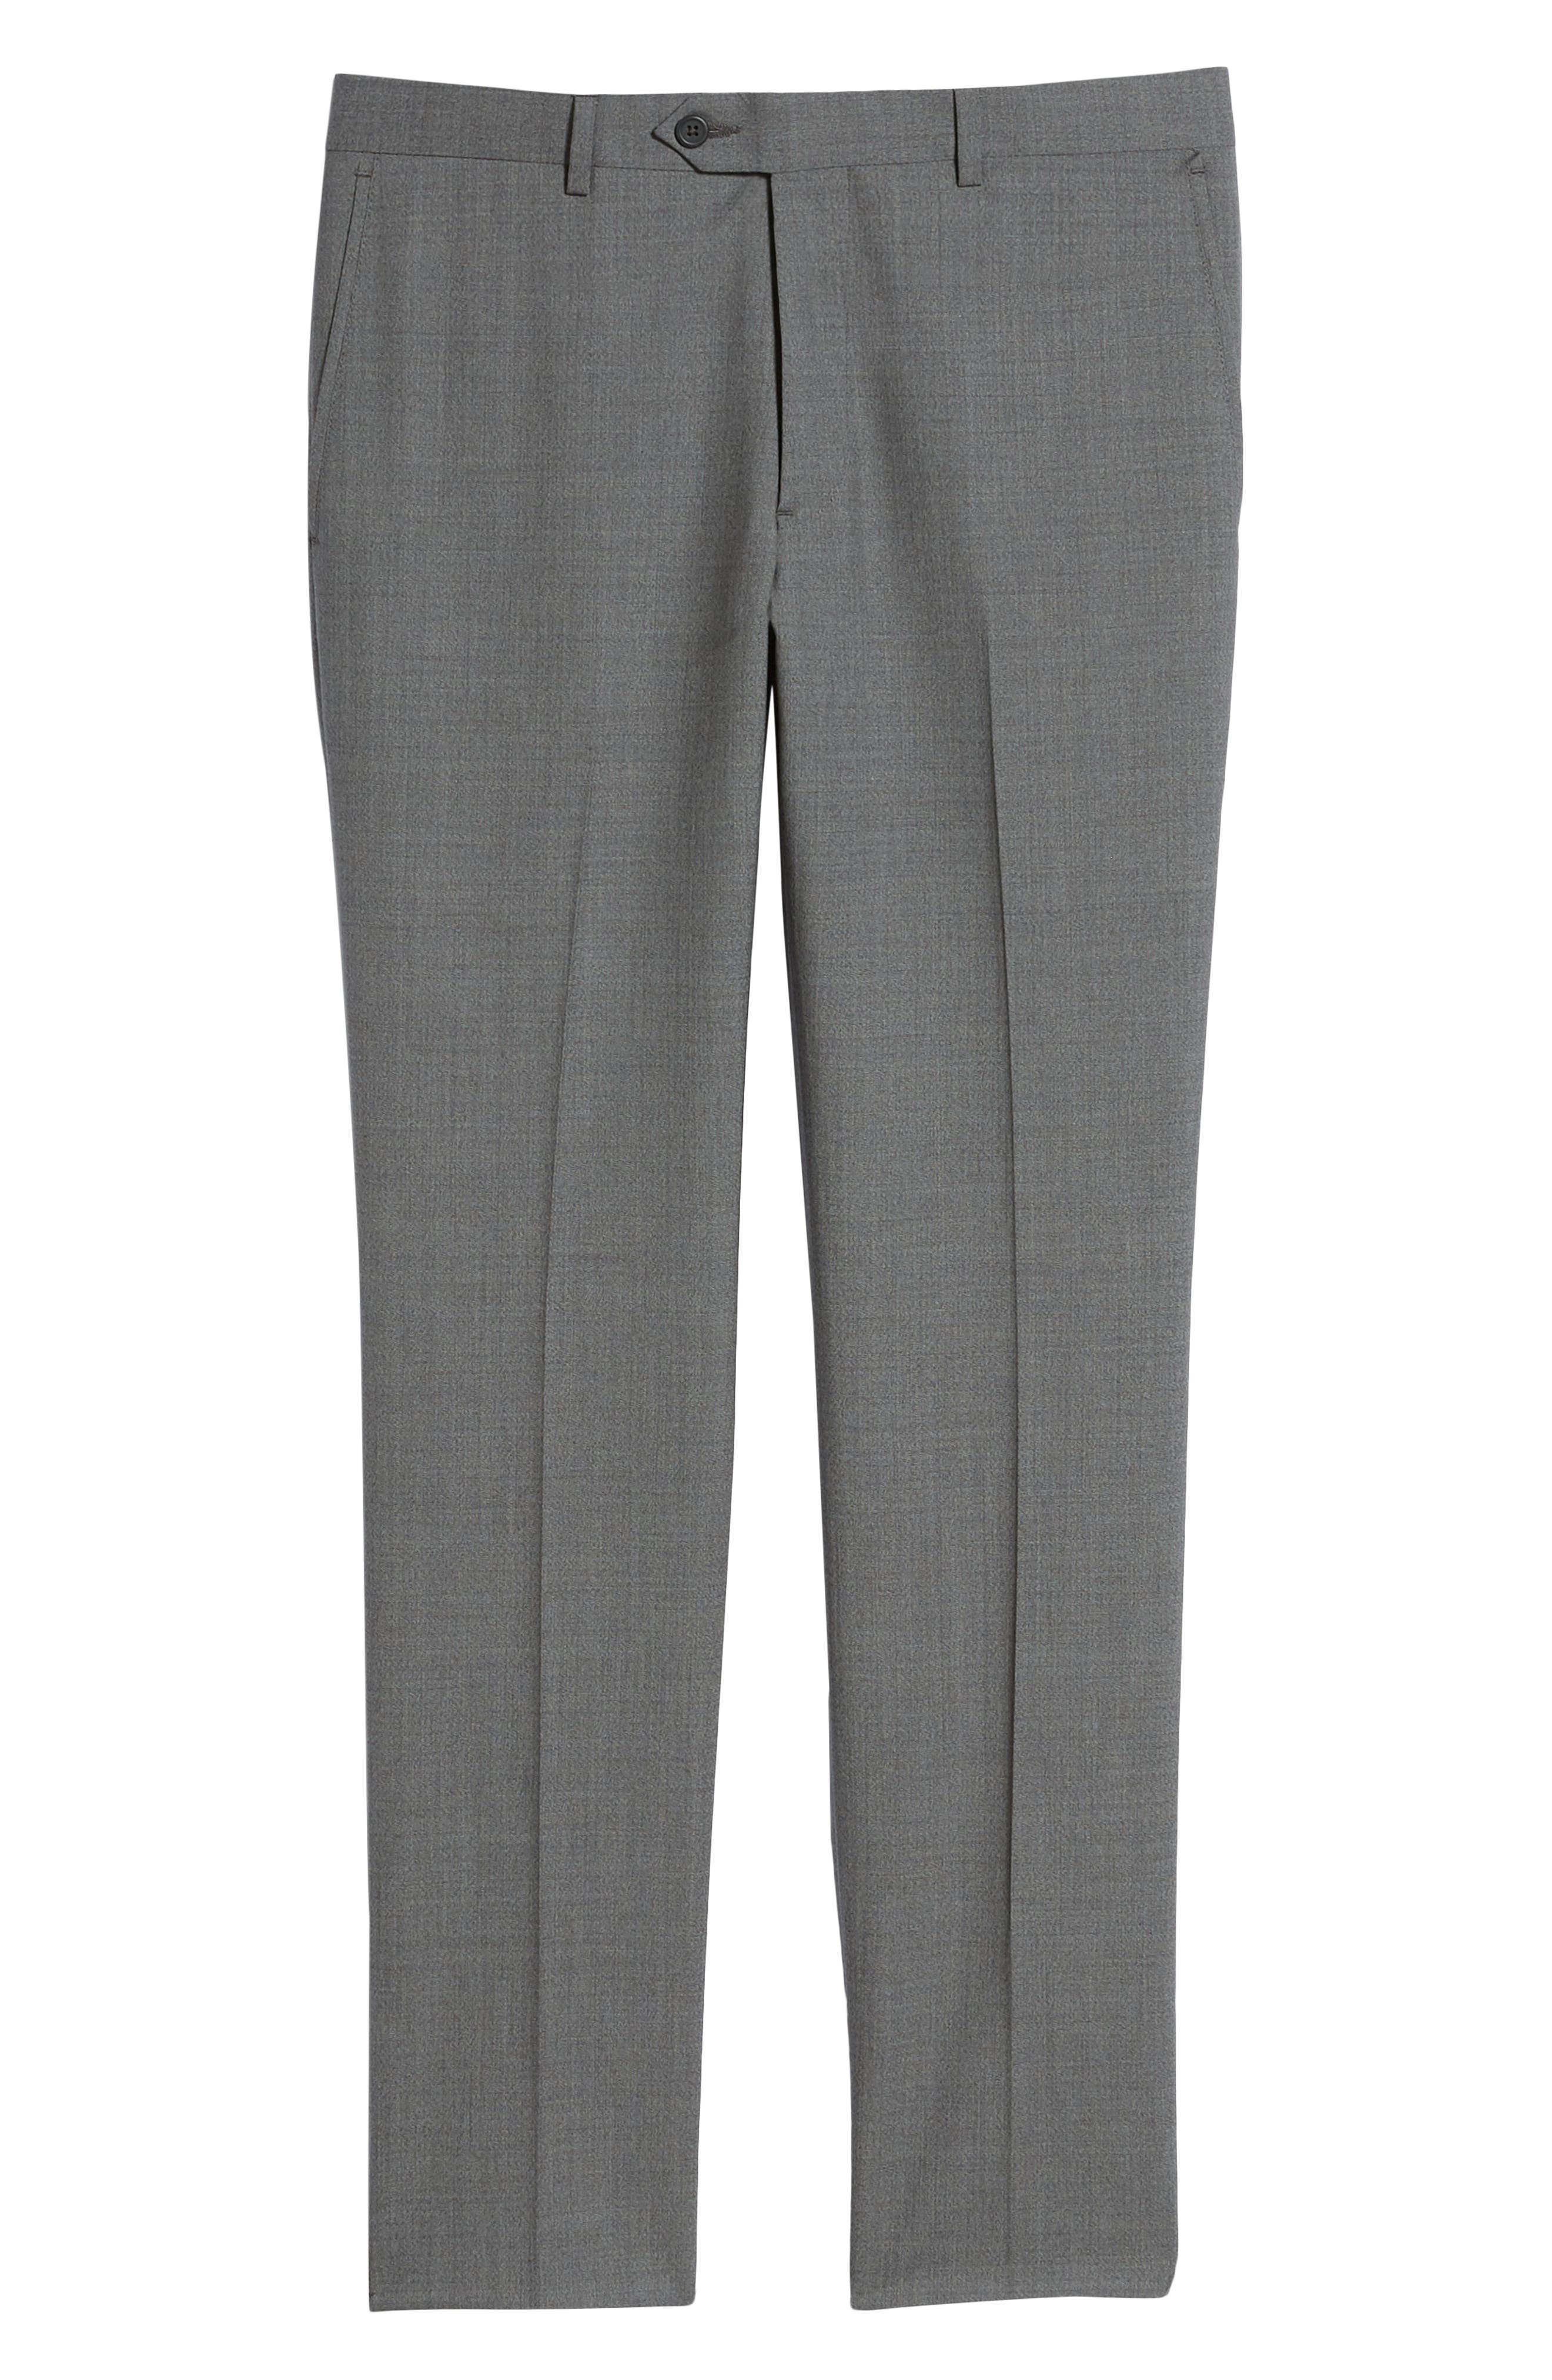 Trim Fit Flat Front Wool Trousers,                             Alternate thumbnail 6, color,                             GREY